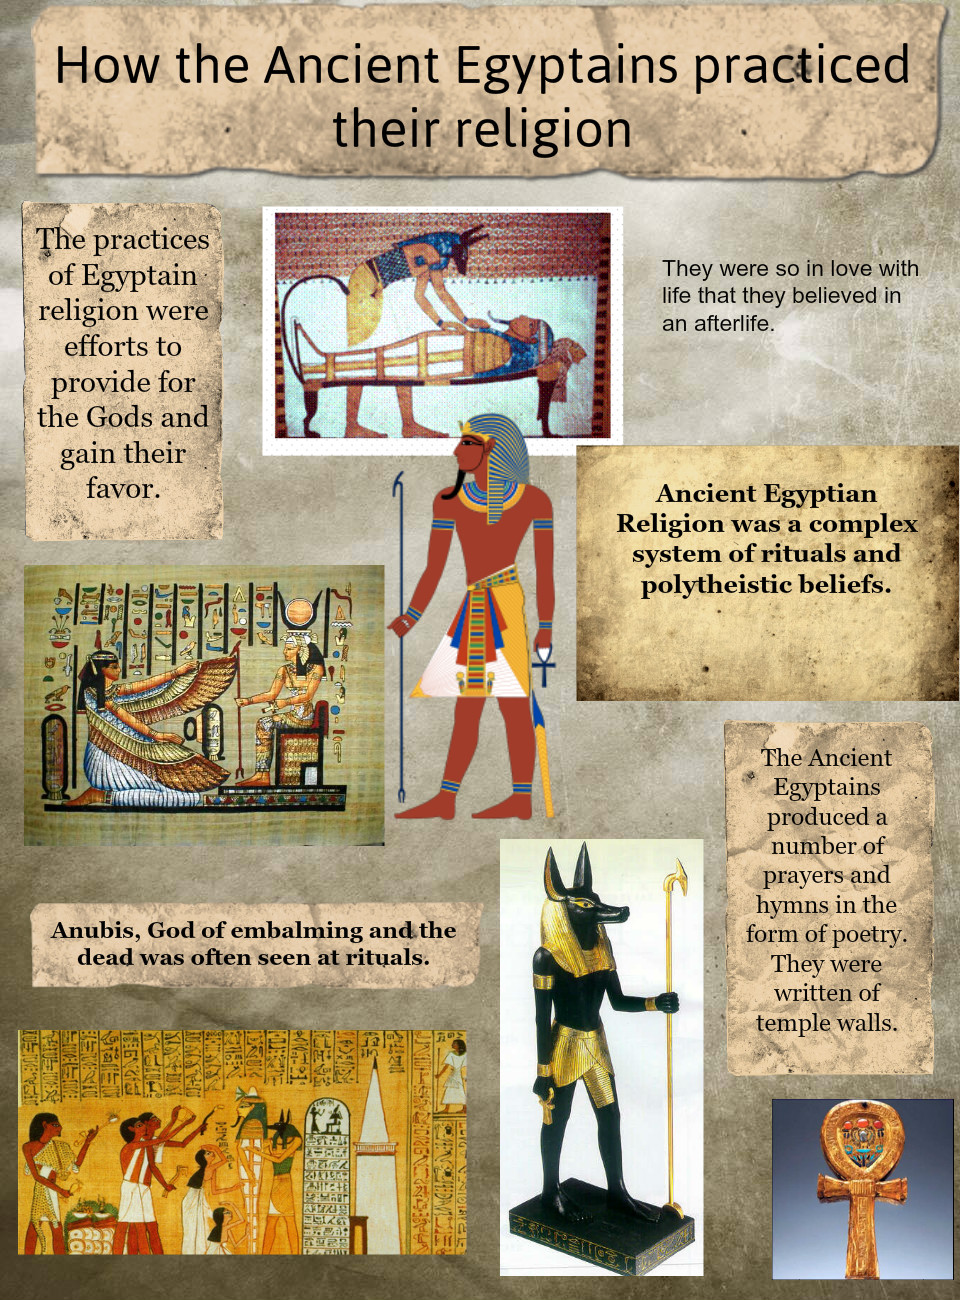 How the Ancient Egyptains practiced their religion